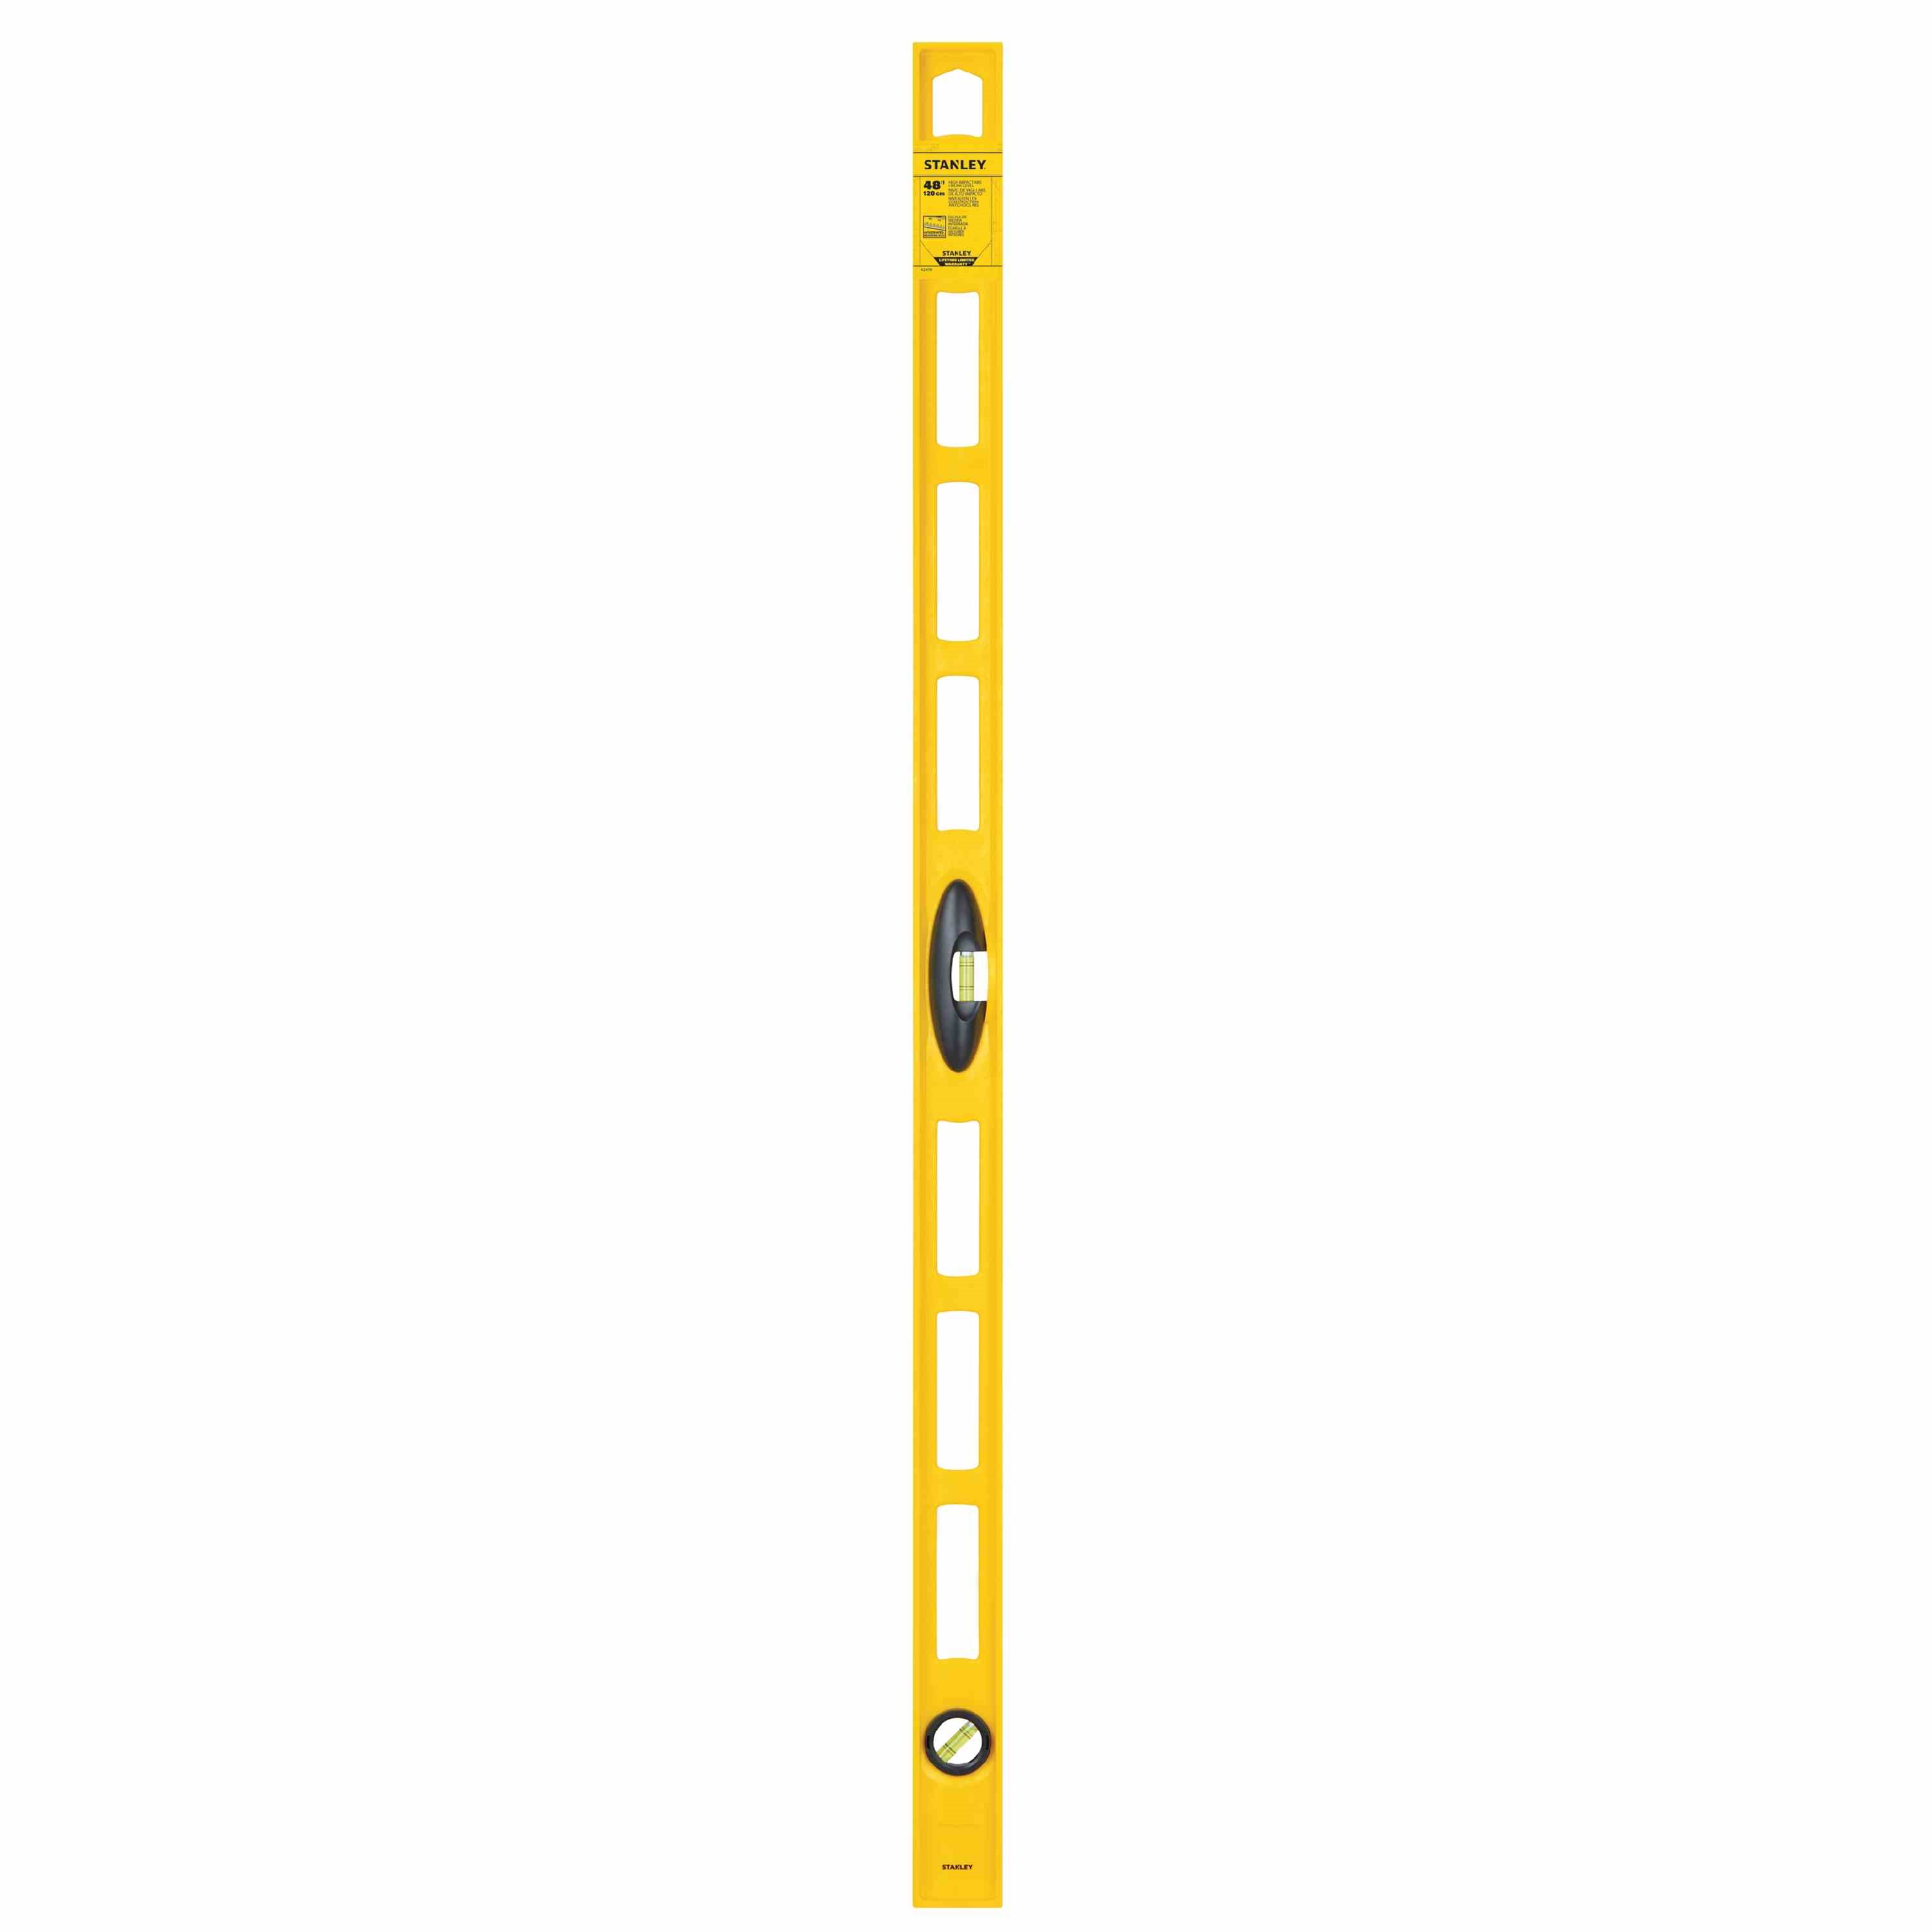 Stanley Tools - 48 in High Impact ABS IBeam Level - 42-470